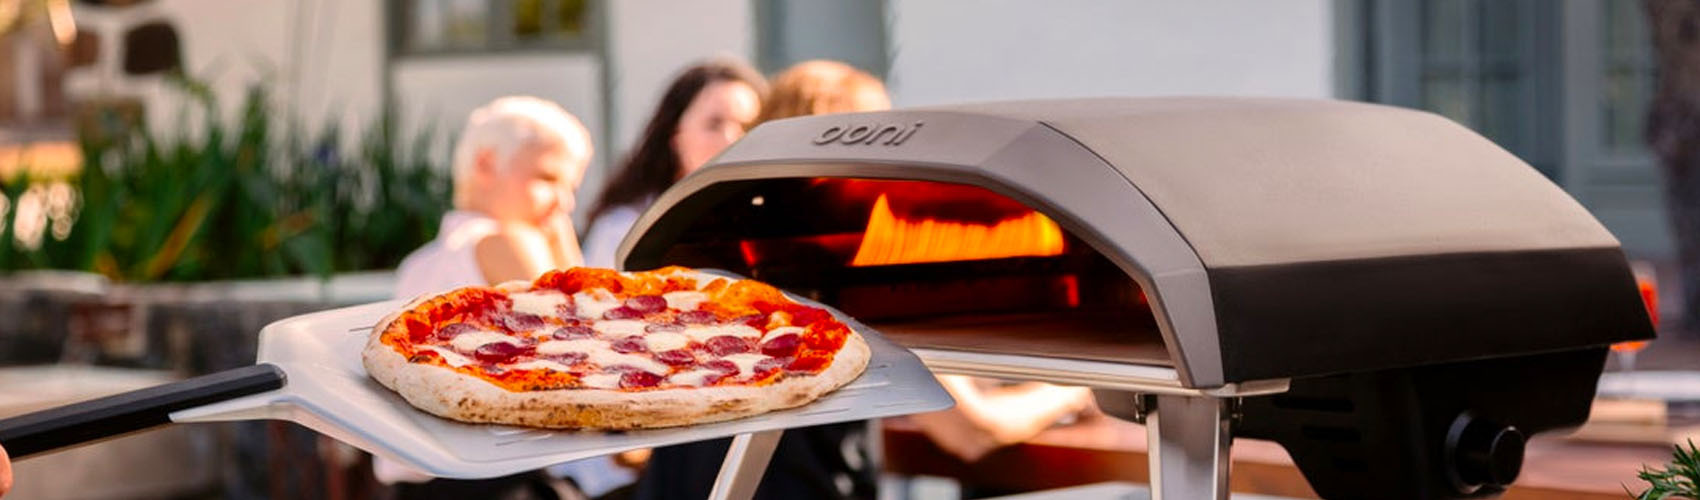 Why you should invest in an Ooni pizza oven